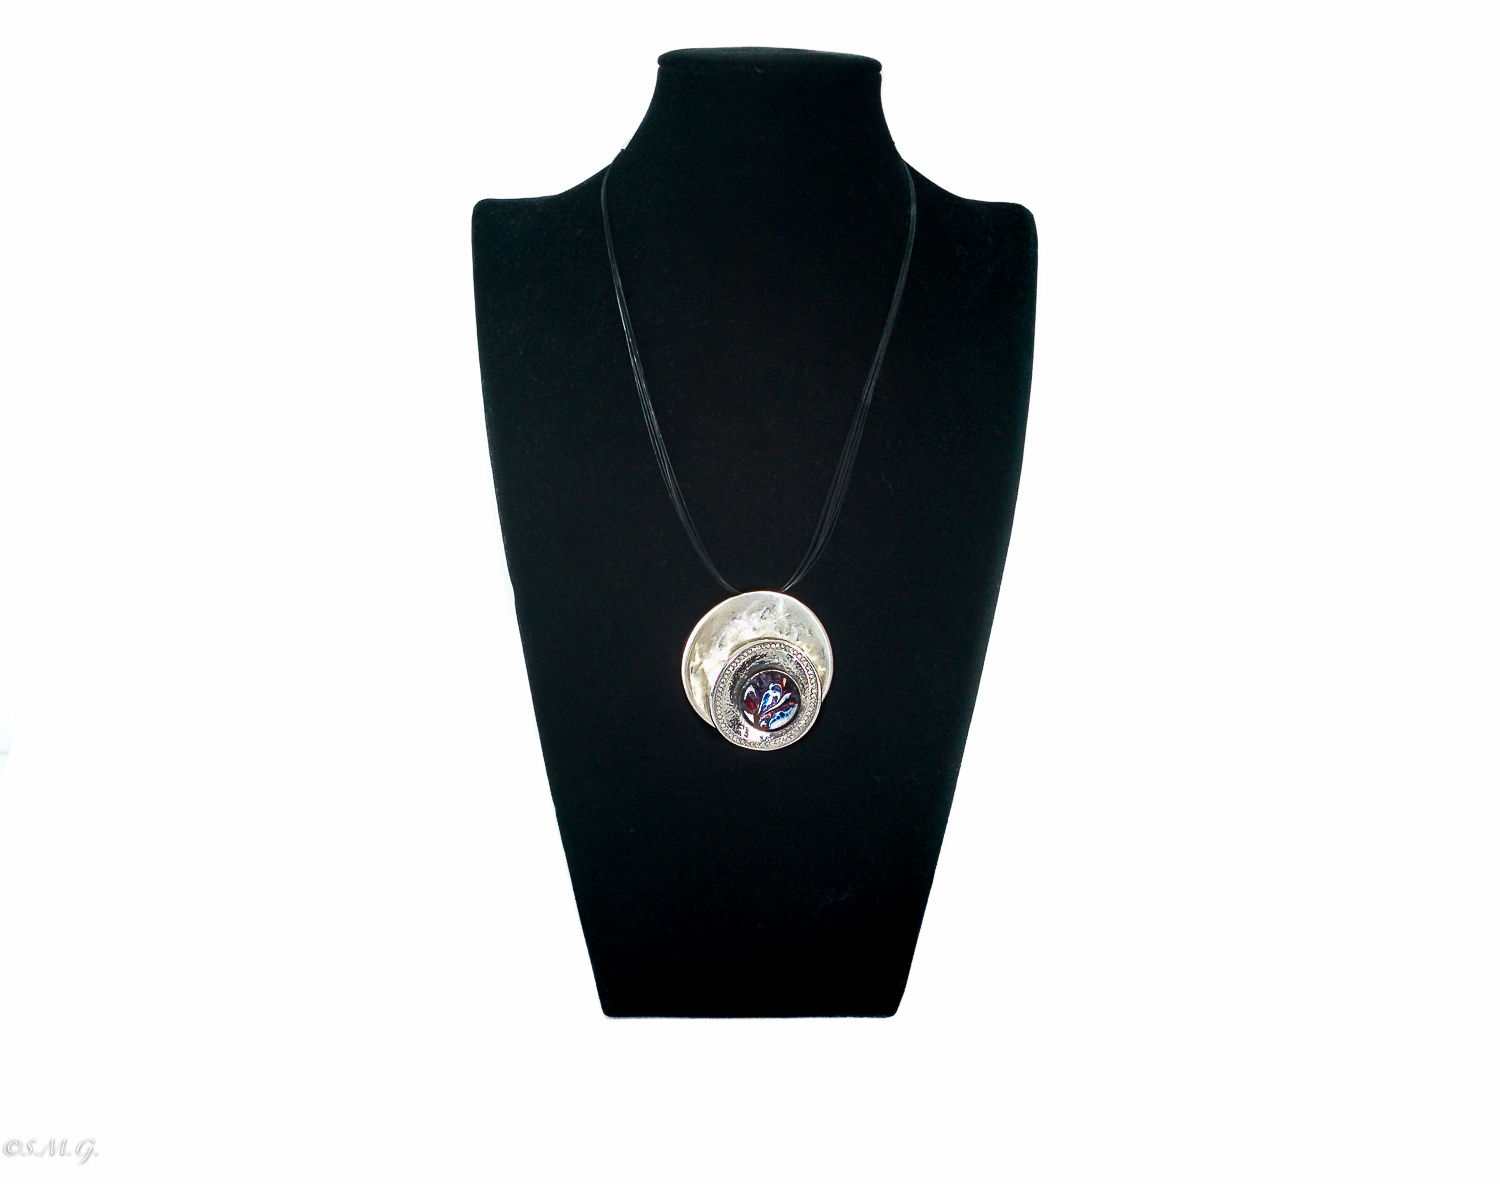 Murano glass necklace with blue pendant on a double round base with crystals on a black string